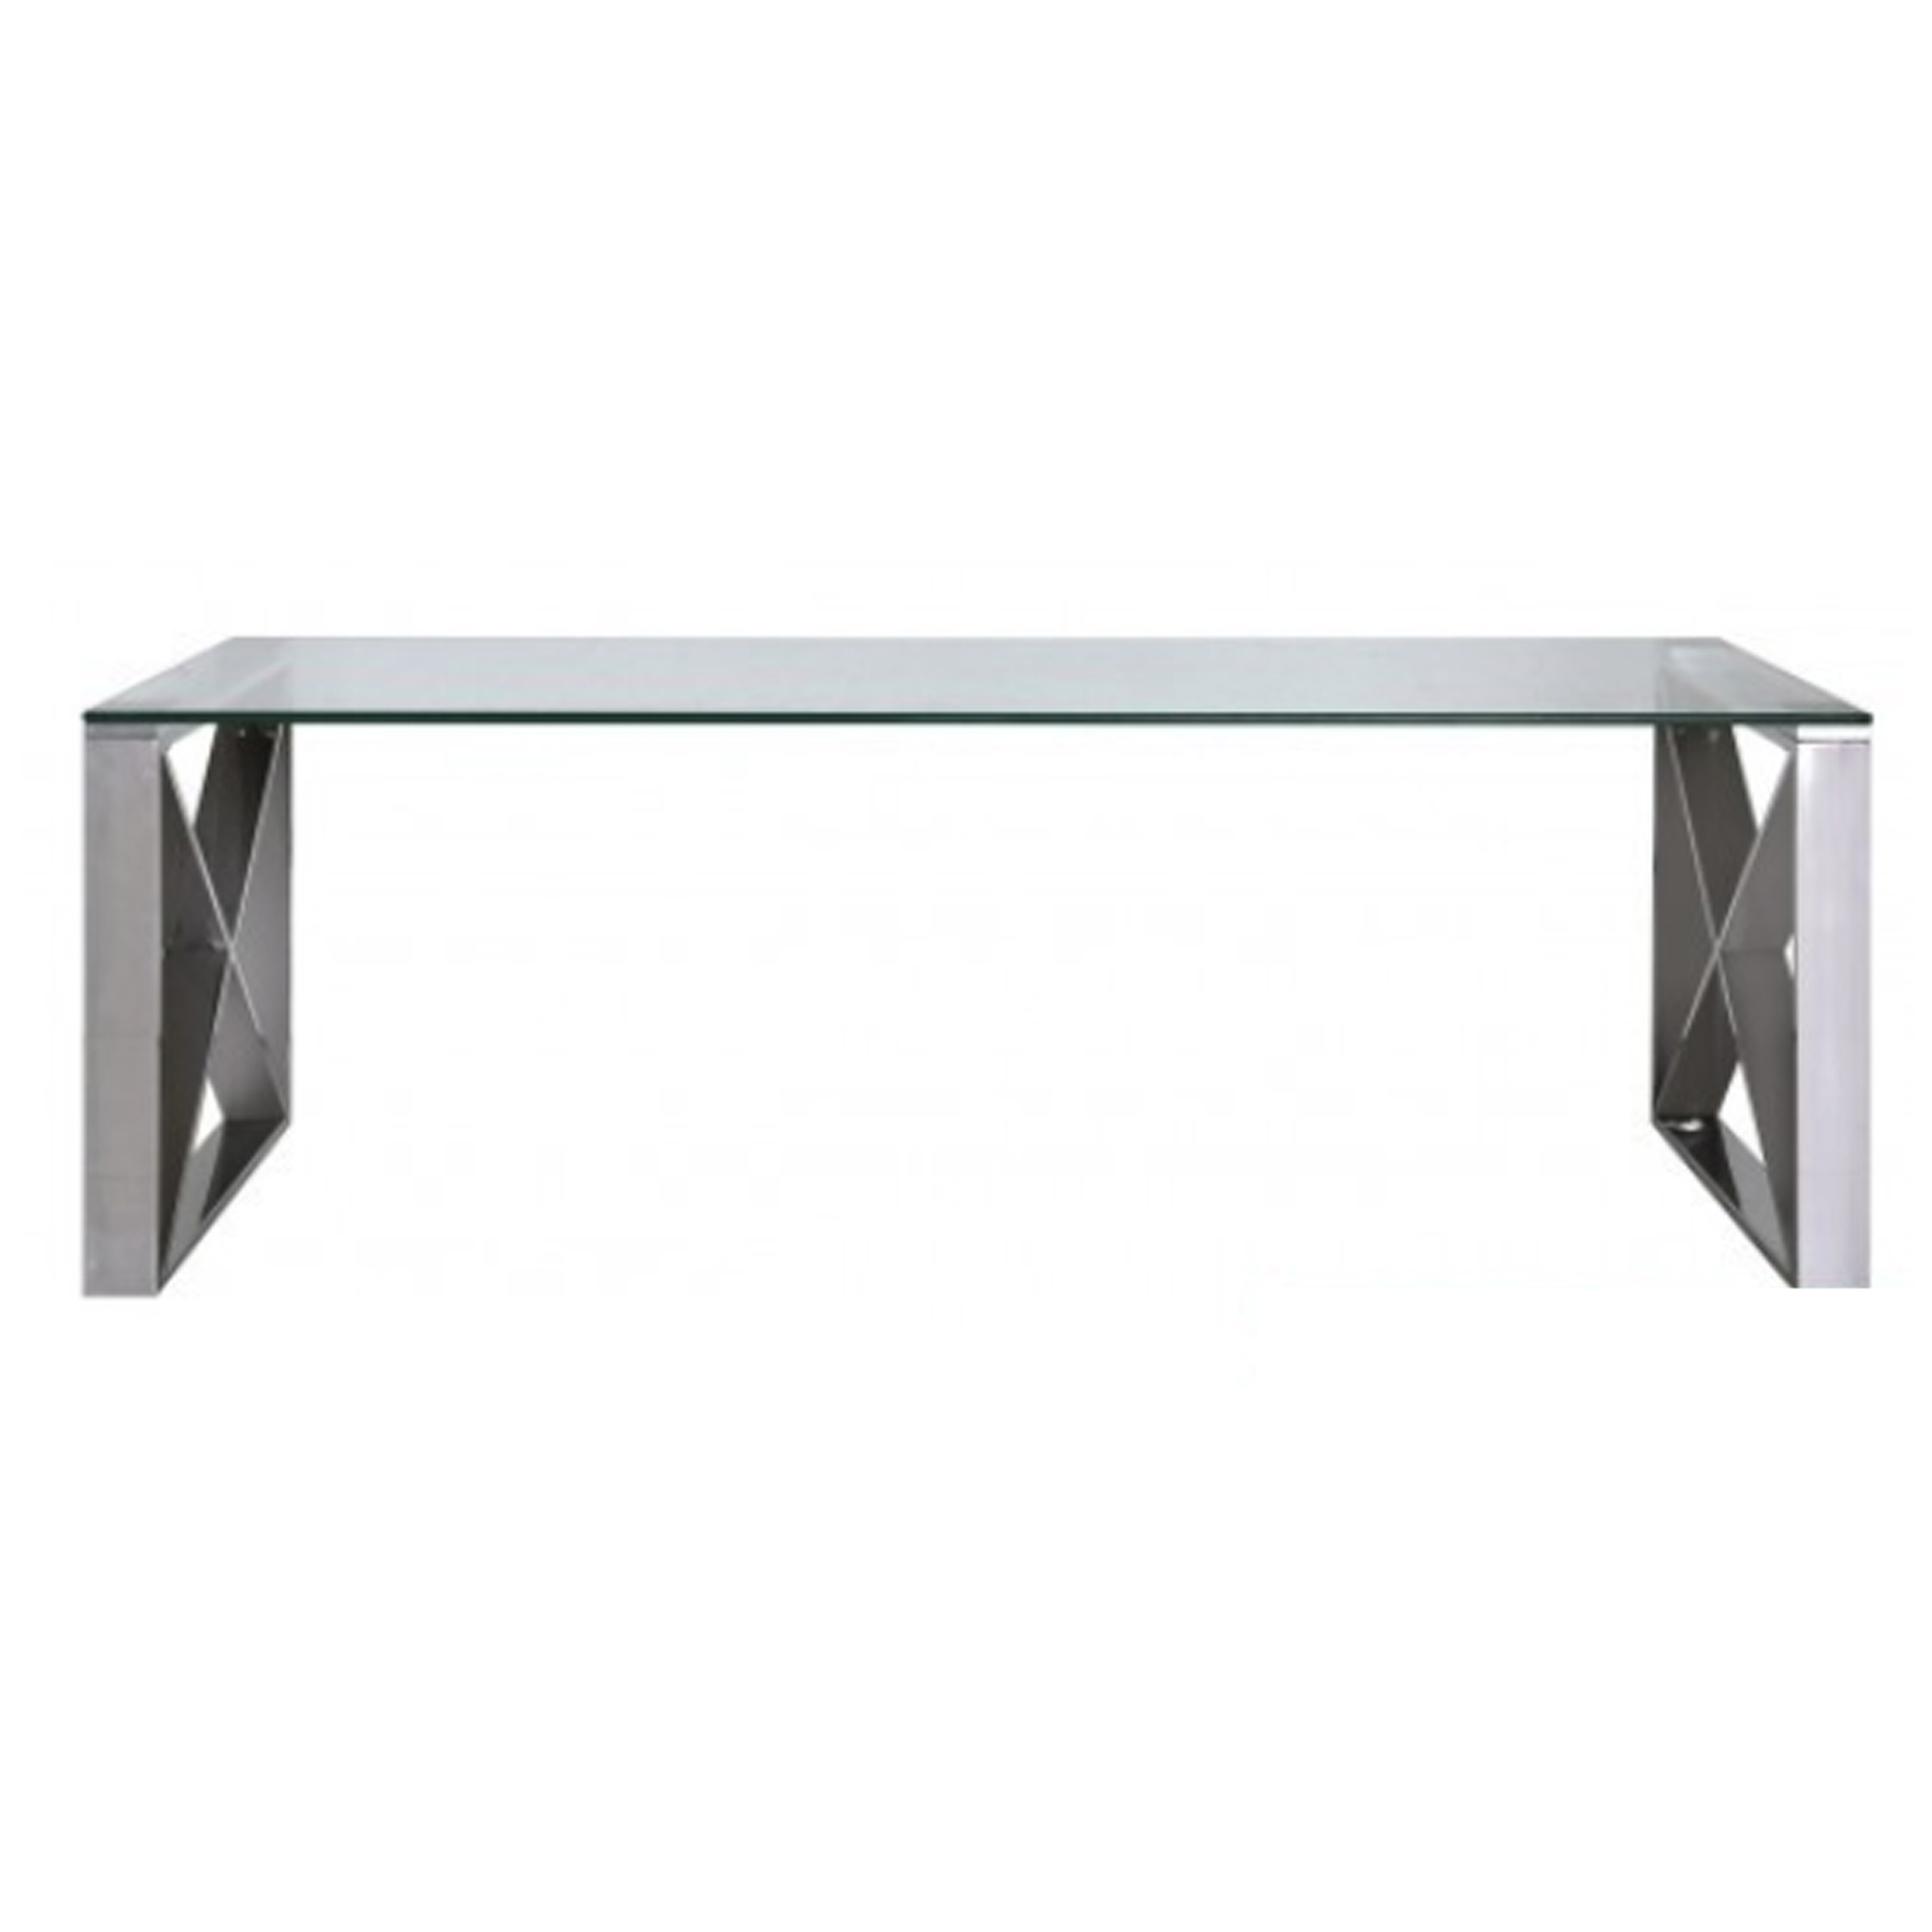 Stainless Steel Glass Coffee Table Coffee Table Modern Furniture